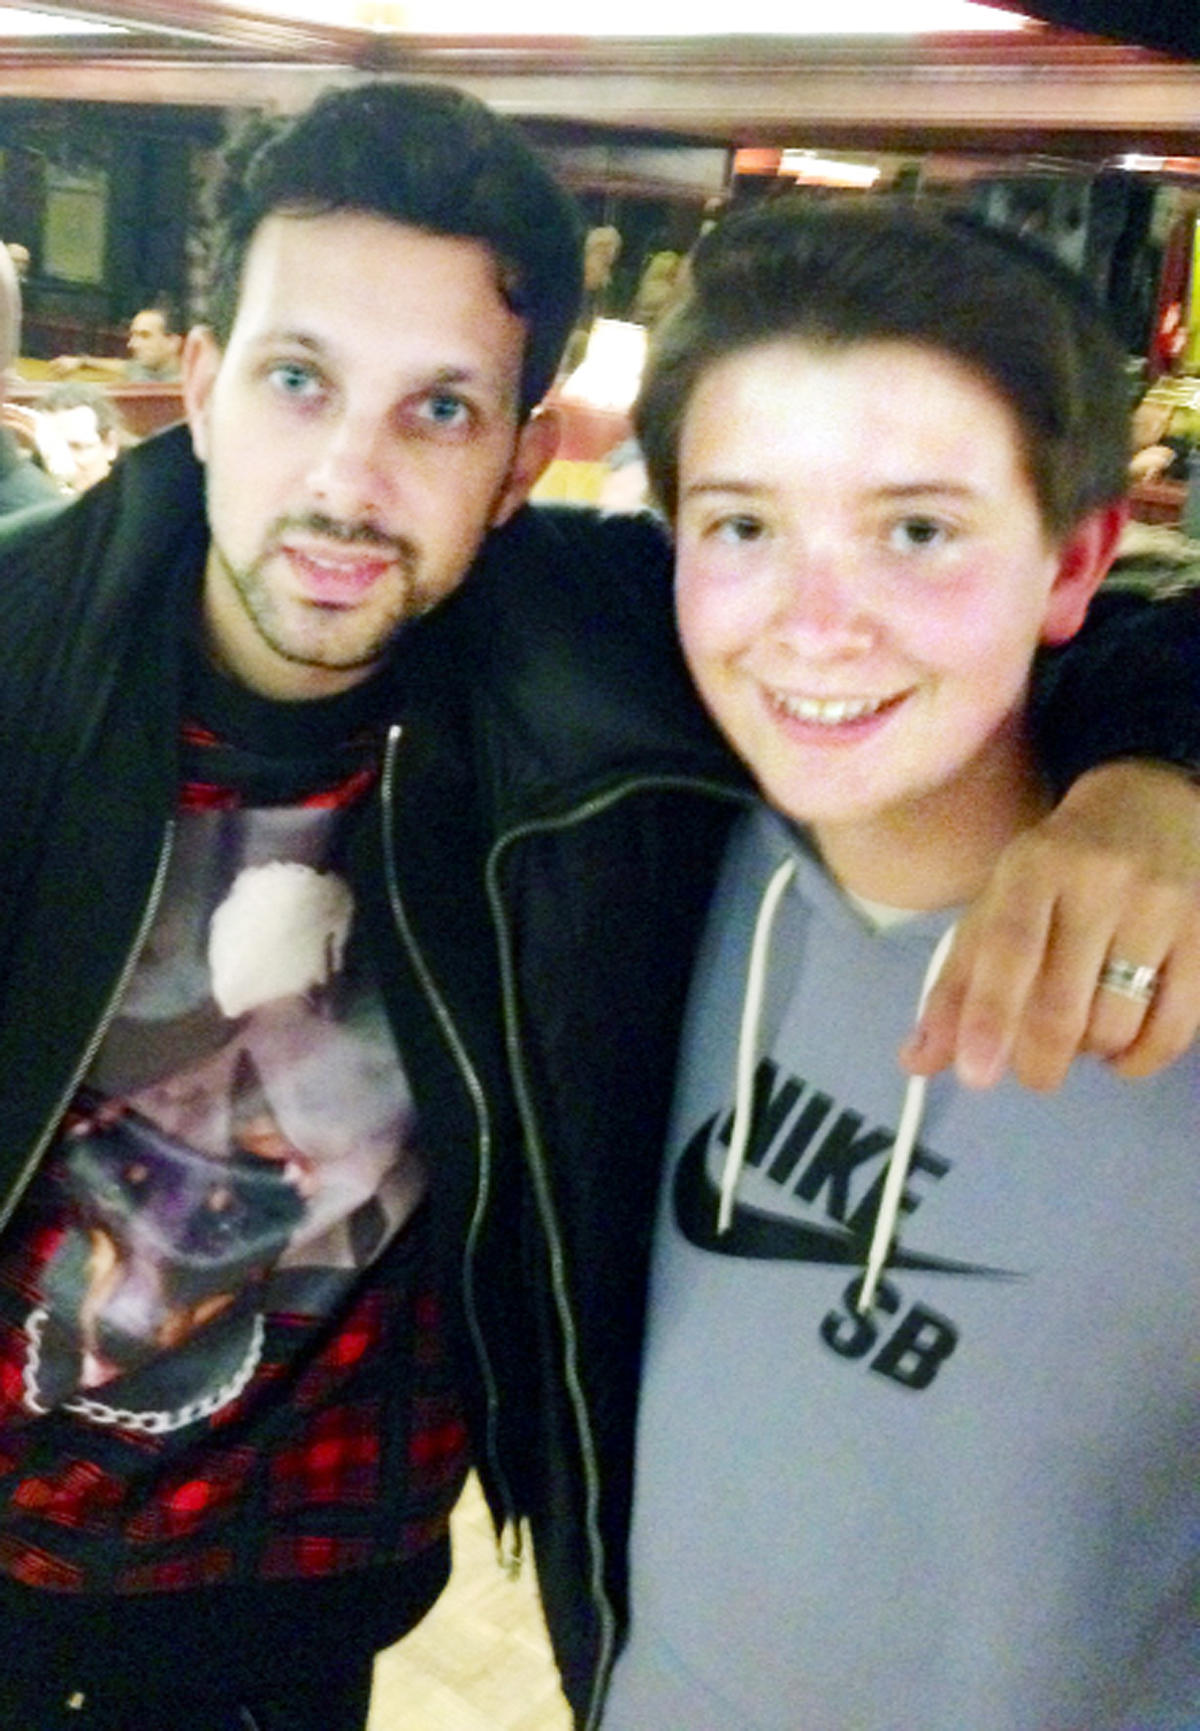 VIDEO: East Lancs magician meets idol 'Dynamo'